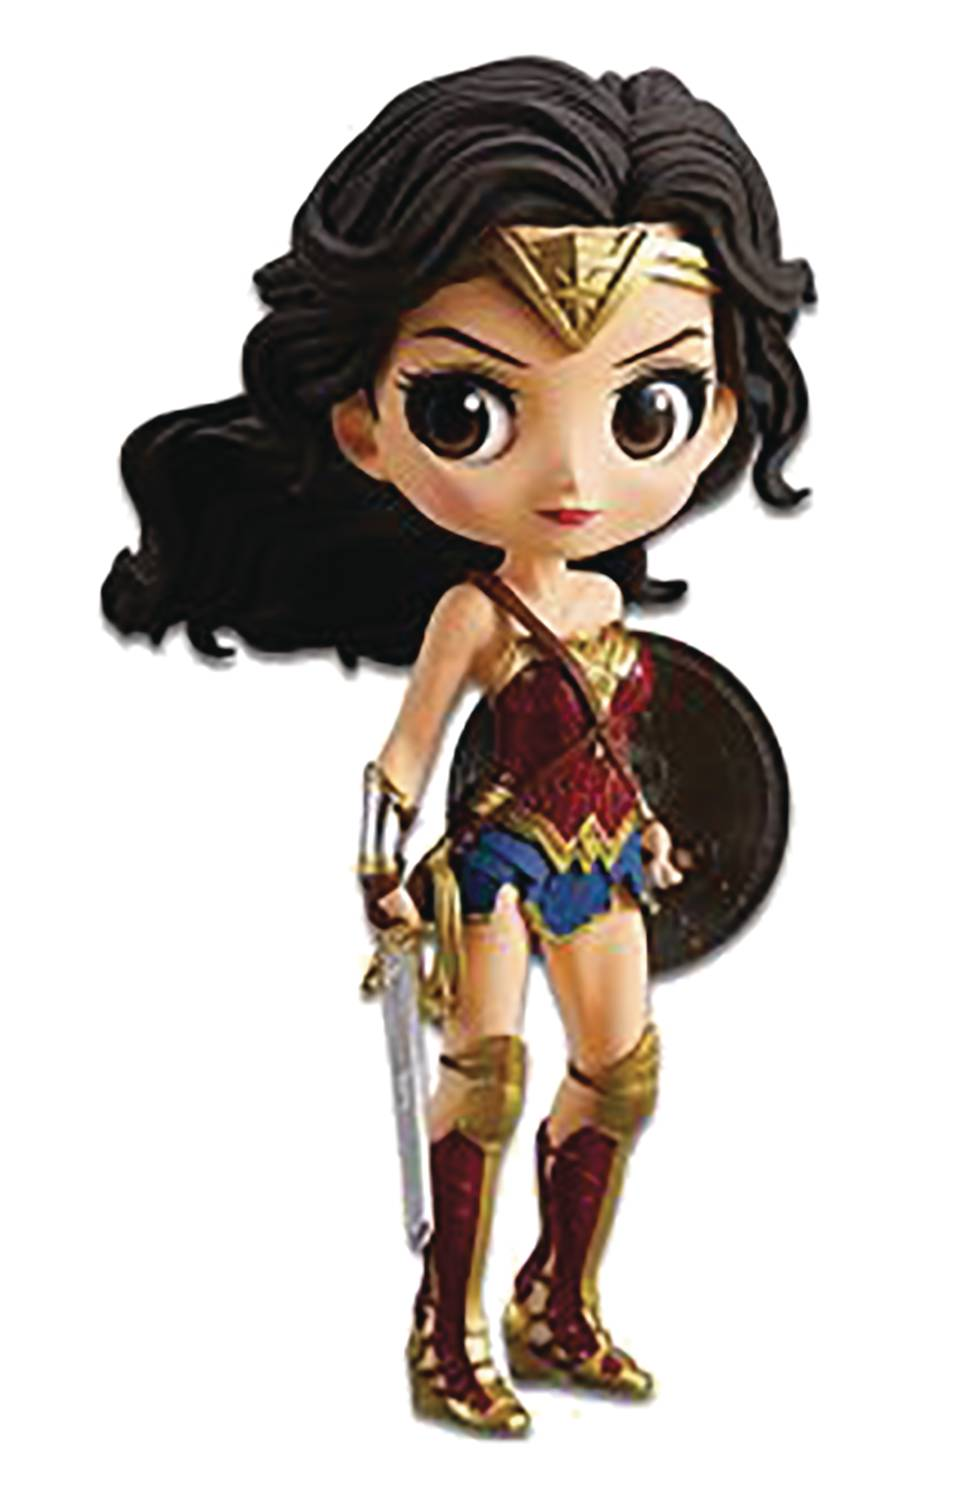 Banpresto DC Justice League Wonder Woman Q-Posket Figure